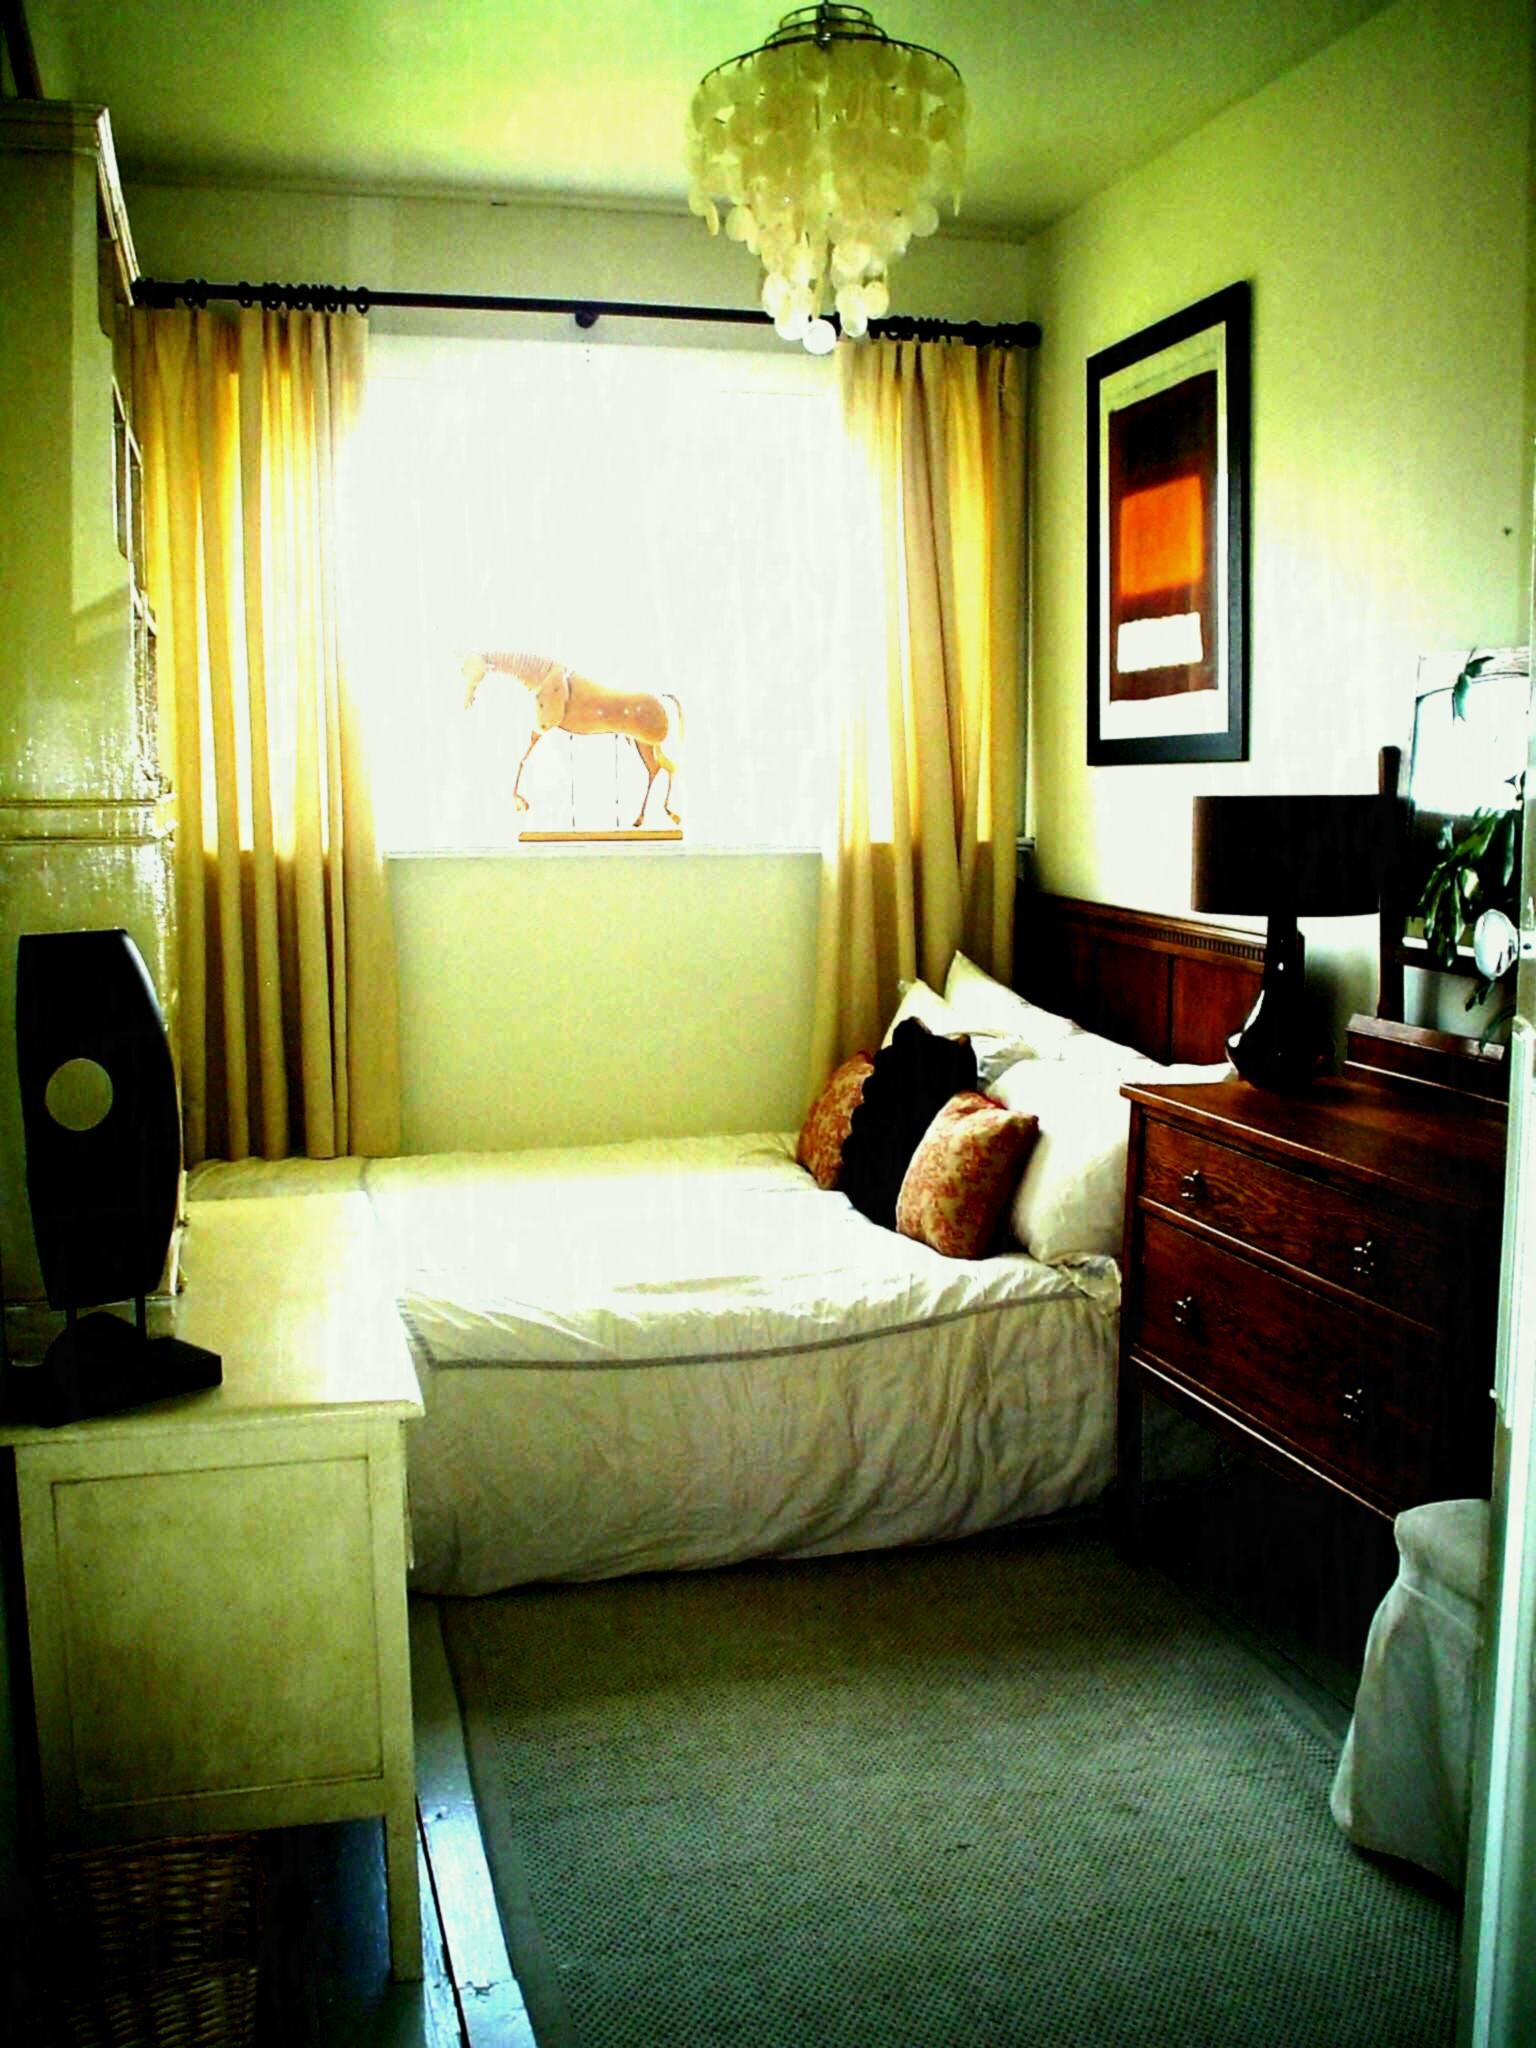 40 Space Saving Ideas For Small Bedrooms Bedroom Interior Small Room Bedroom Bedroom Arrangement